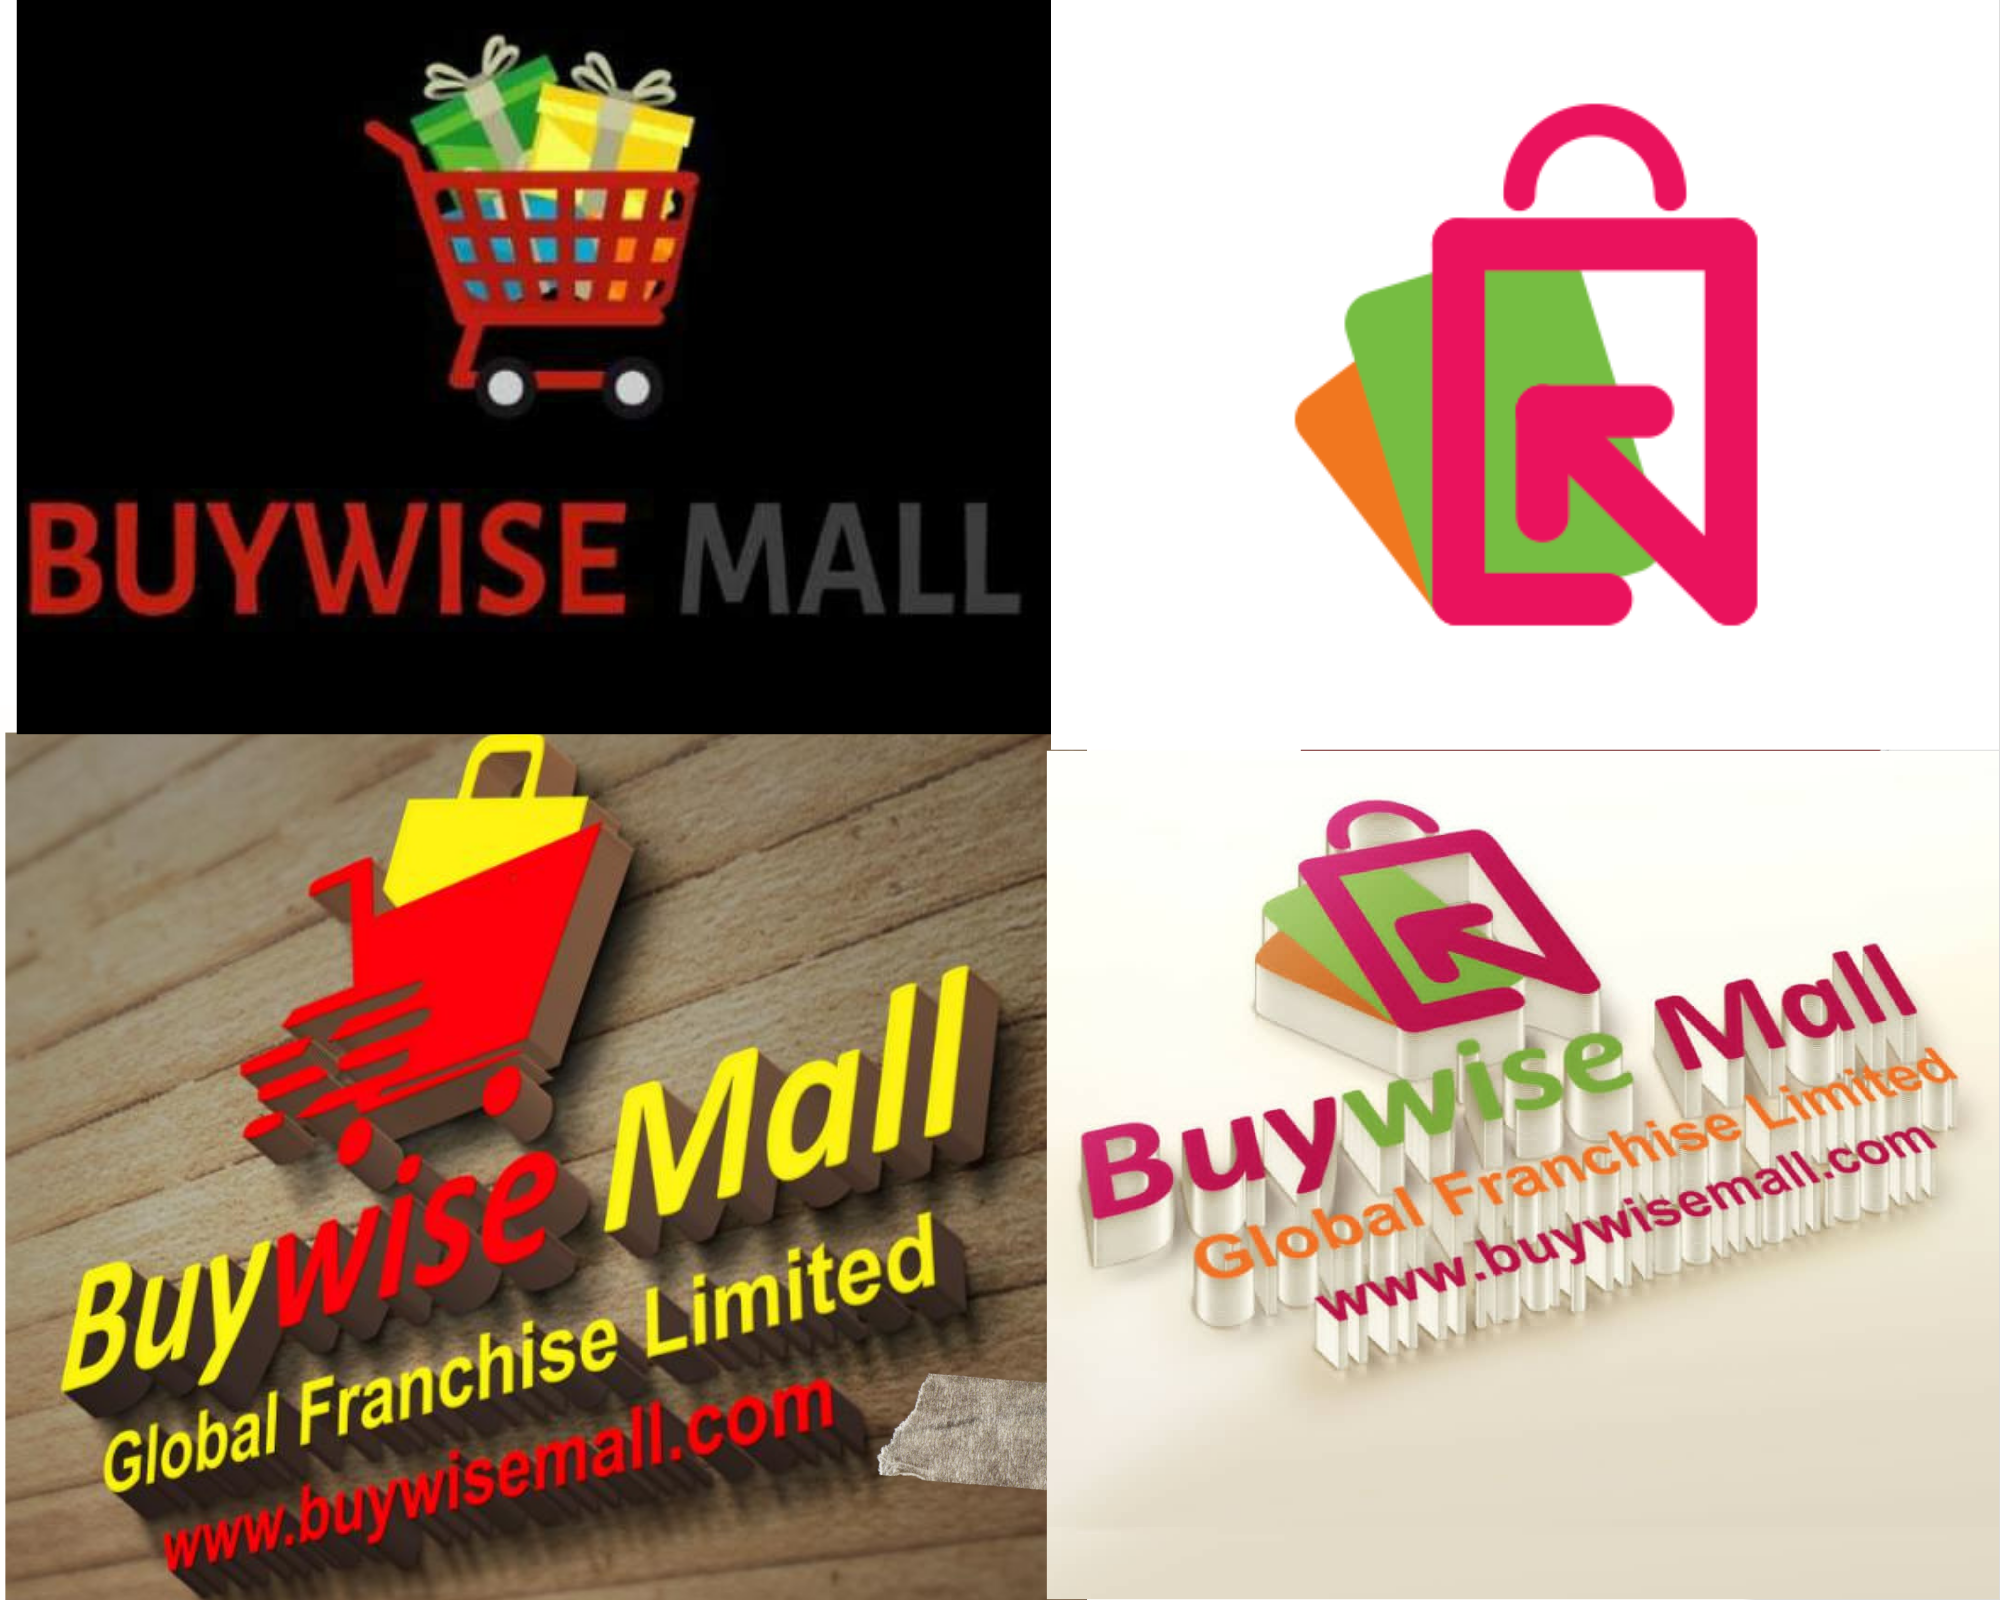 Buywise Mall ANNOUNCEMENT: Buywisemall.com changes its company business logo https://buywisemall.com/announcement-buywisemall-com-changes-its-company-business-logo/